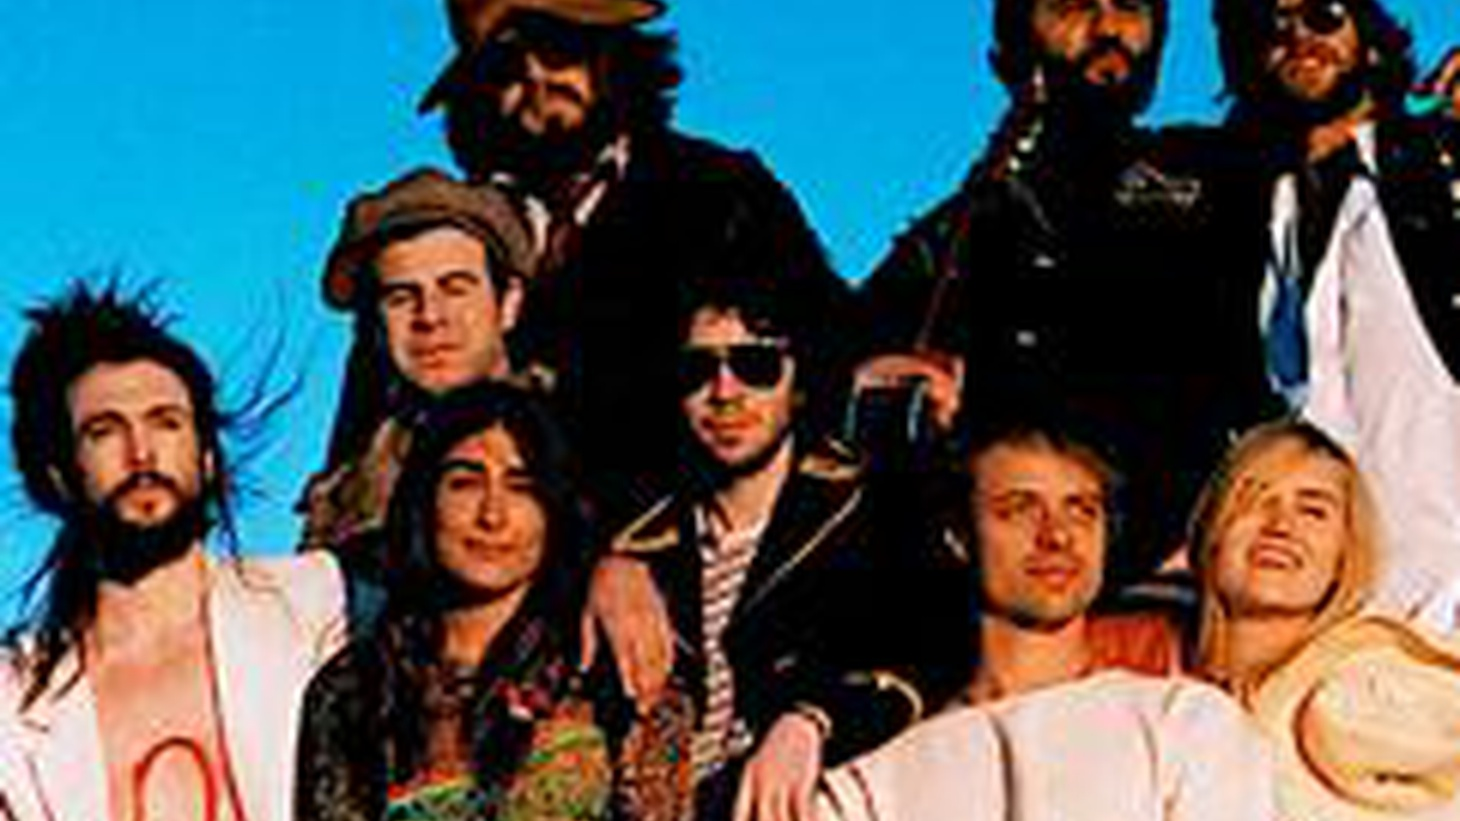 Edward Sharpe and The Magnetic Zeros make their worldwide radio debut when Anne Litt guest hosts  Morning Becomes Eclectic at 11:15am.